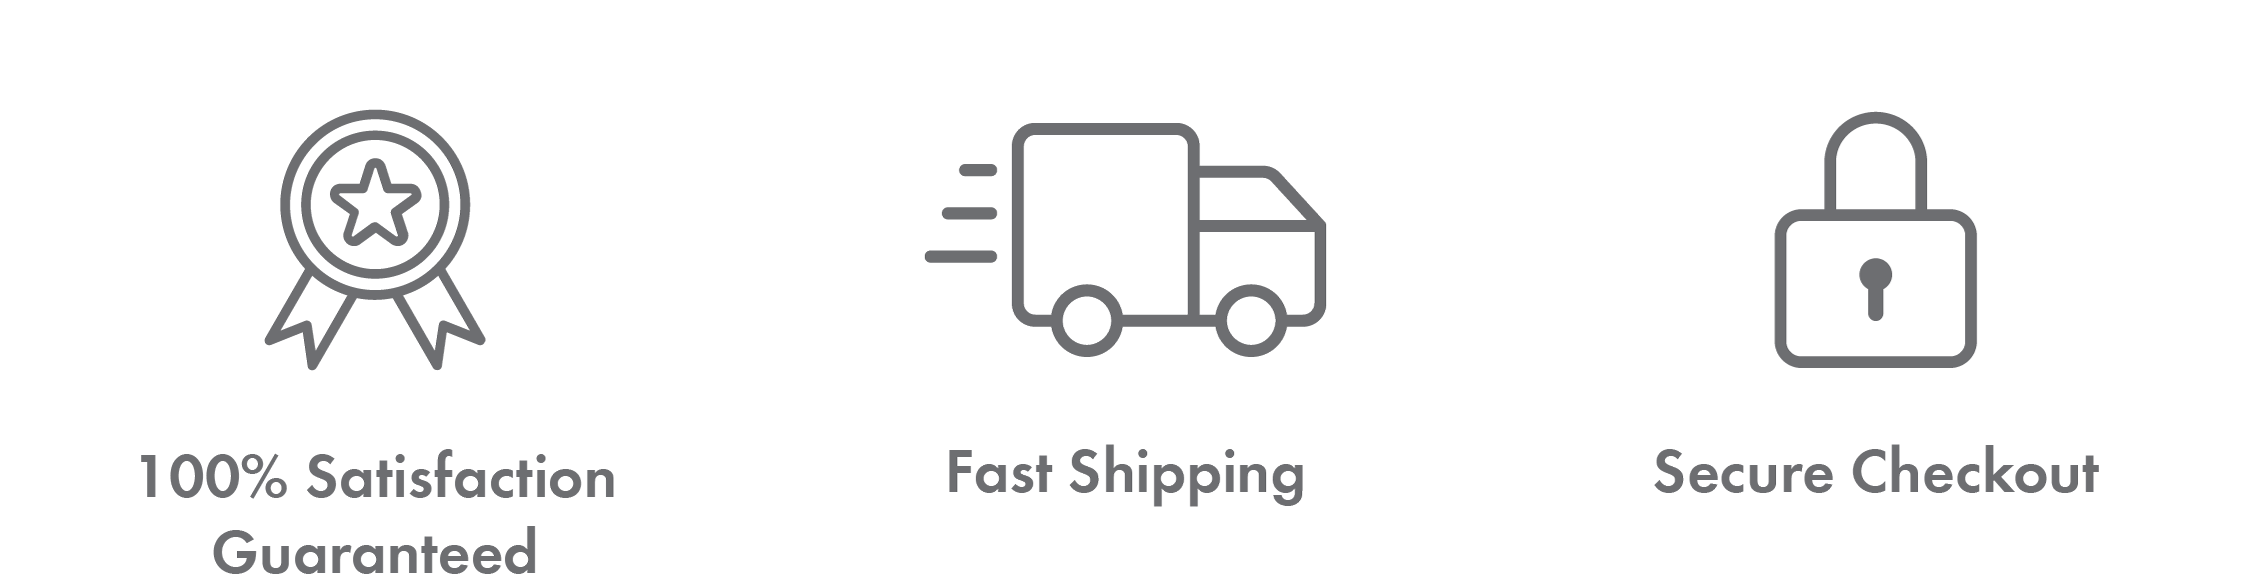 Daily-Supp-Club-Secure-Checkout-Fast-Shipping-Satisfaction-Guaranteed.png